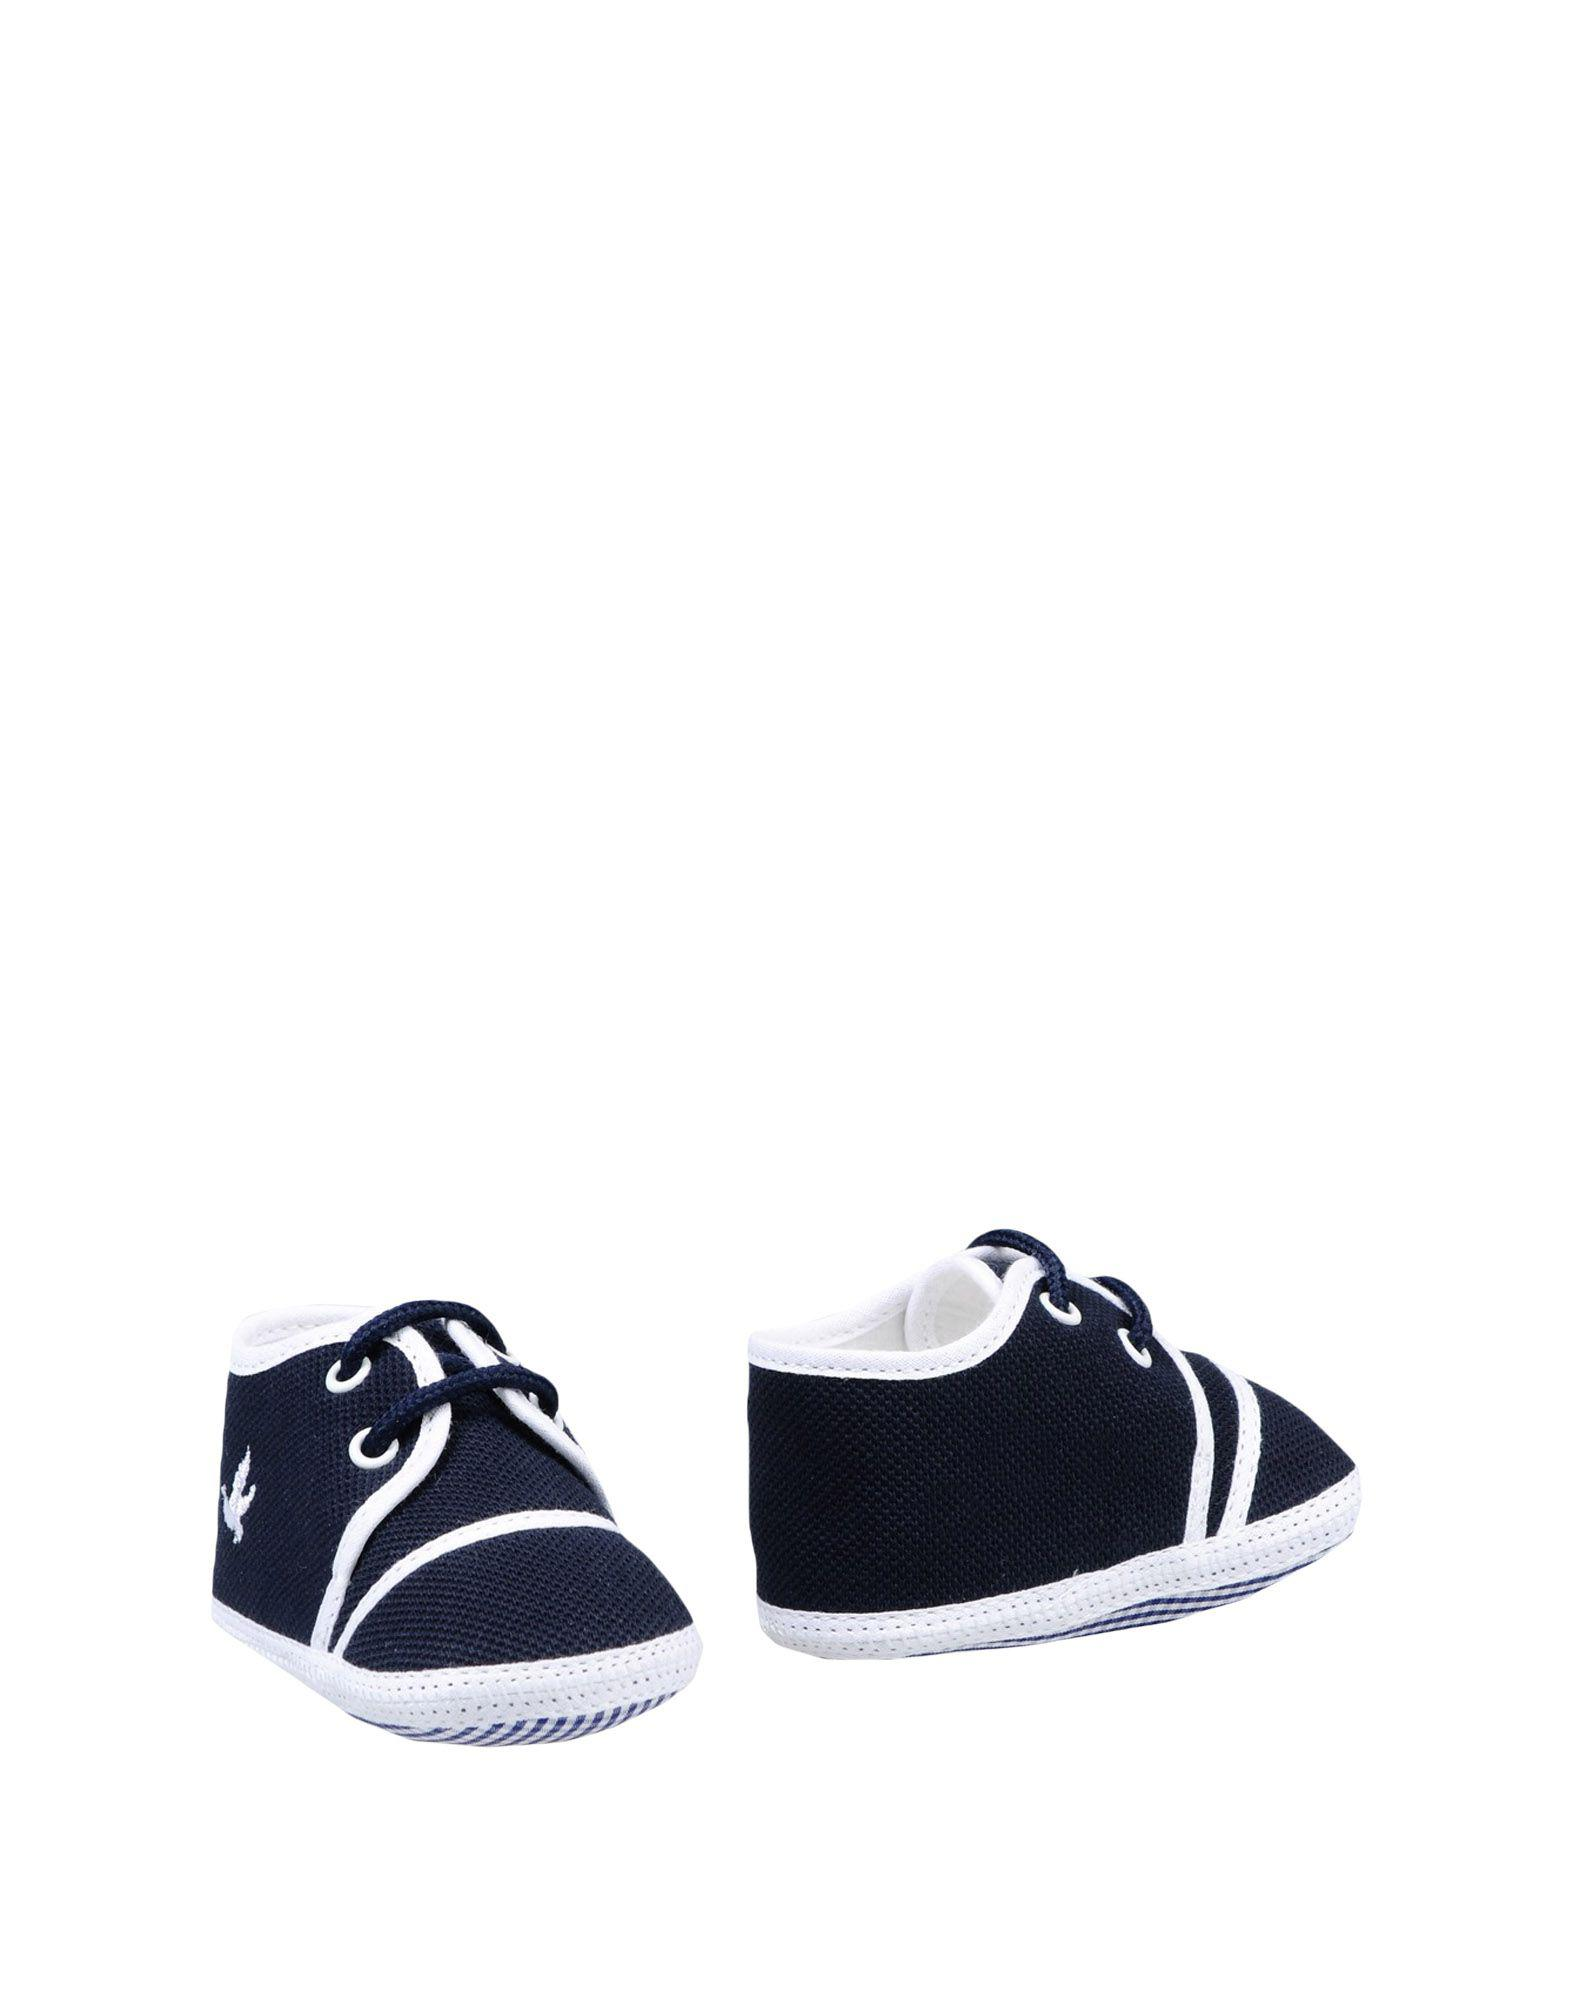 BROOKSFIELD Sneakers discount with mastercard ZPYaSzwl